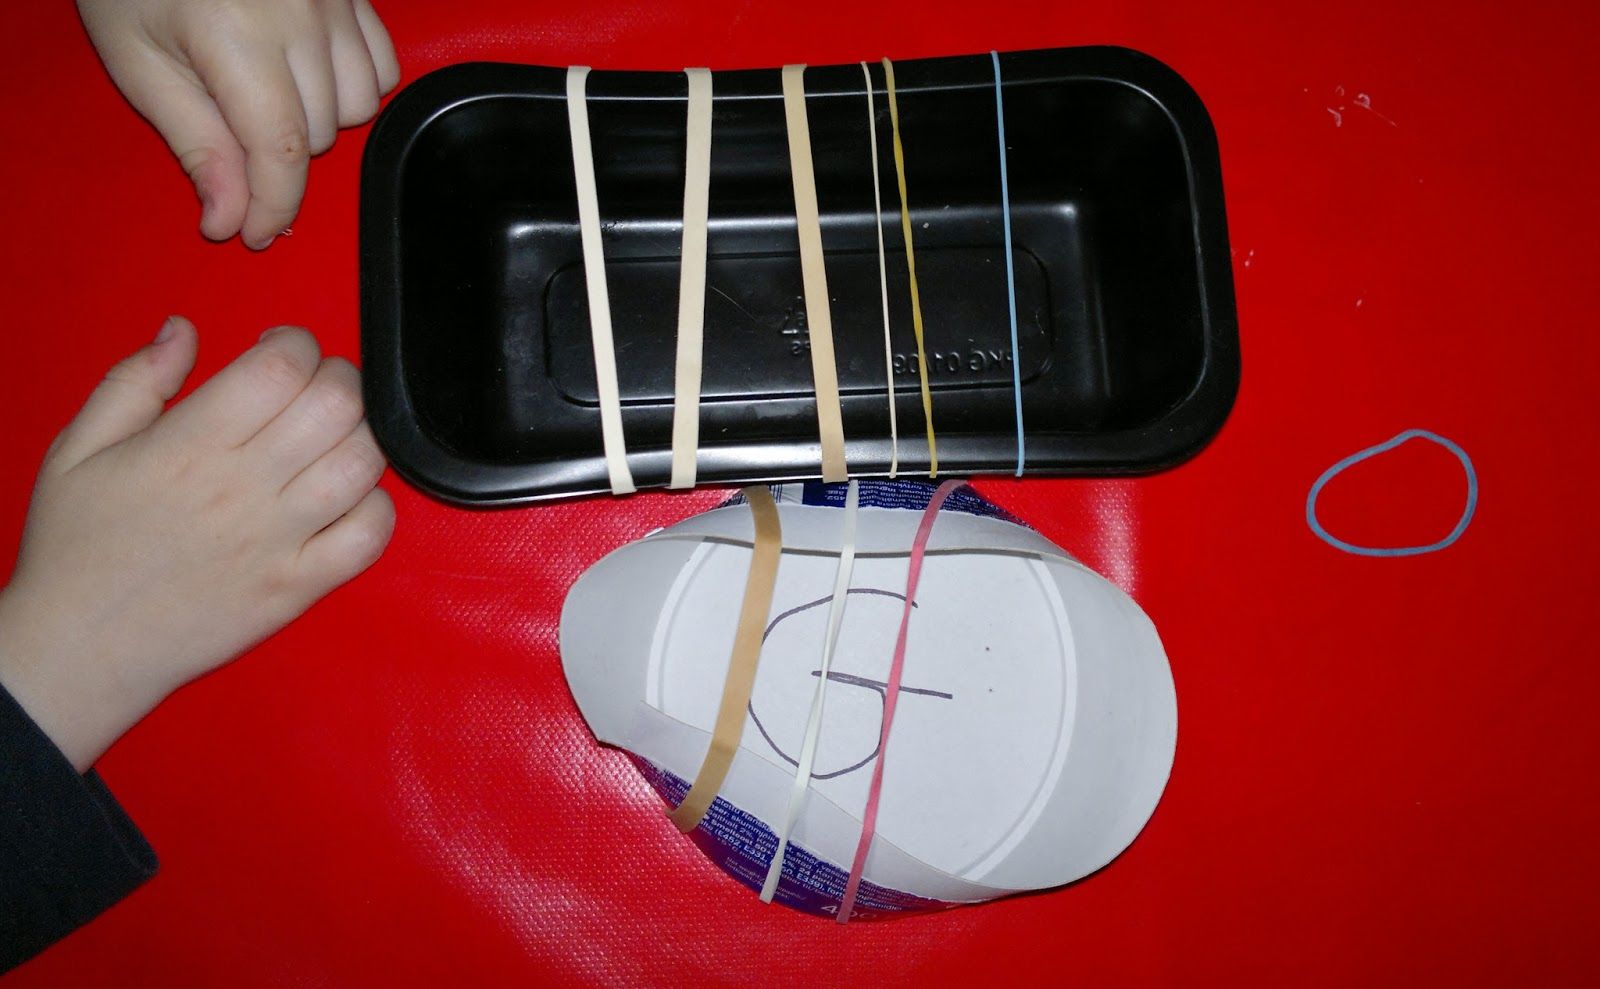 Le Baby Bakery: Elastic Band Guitars